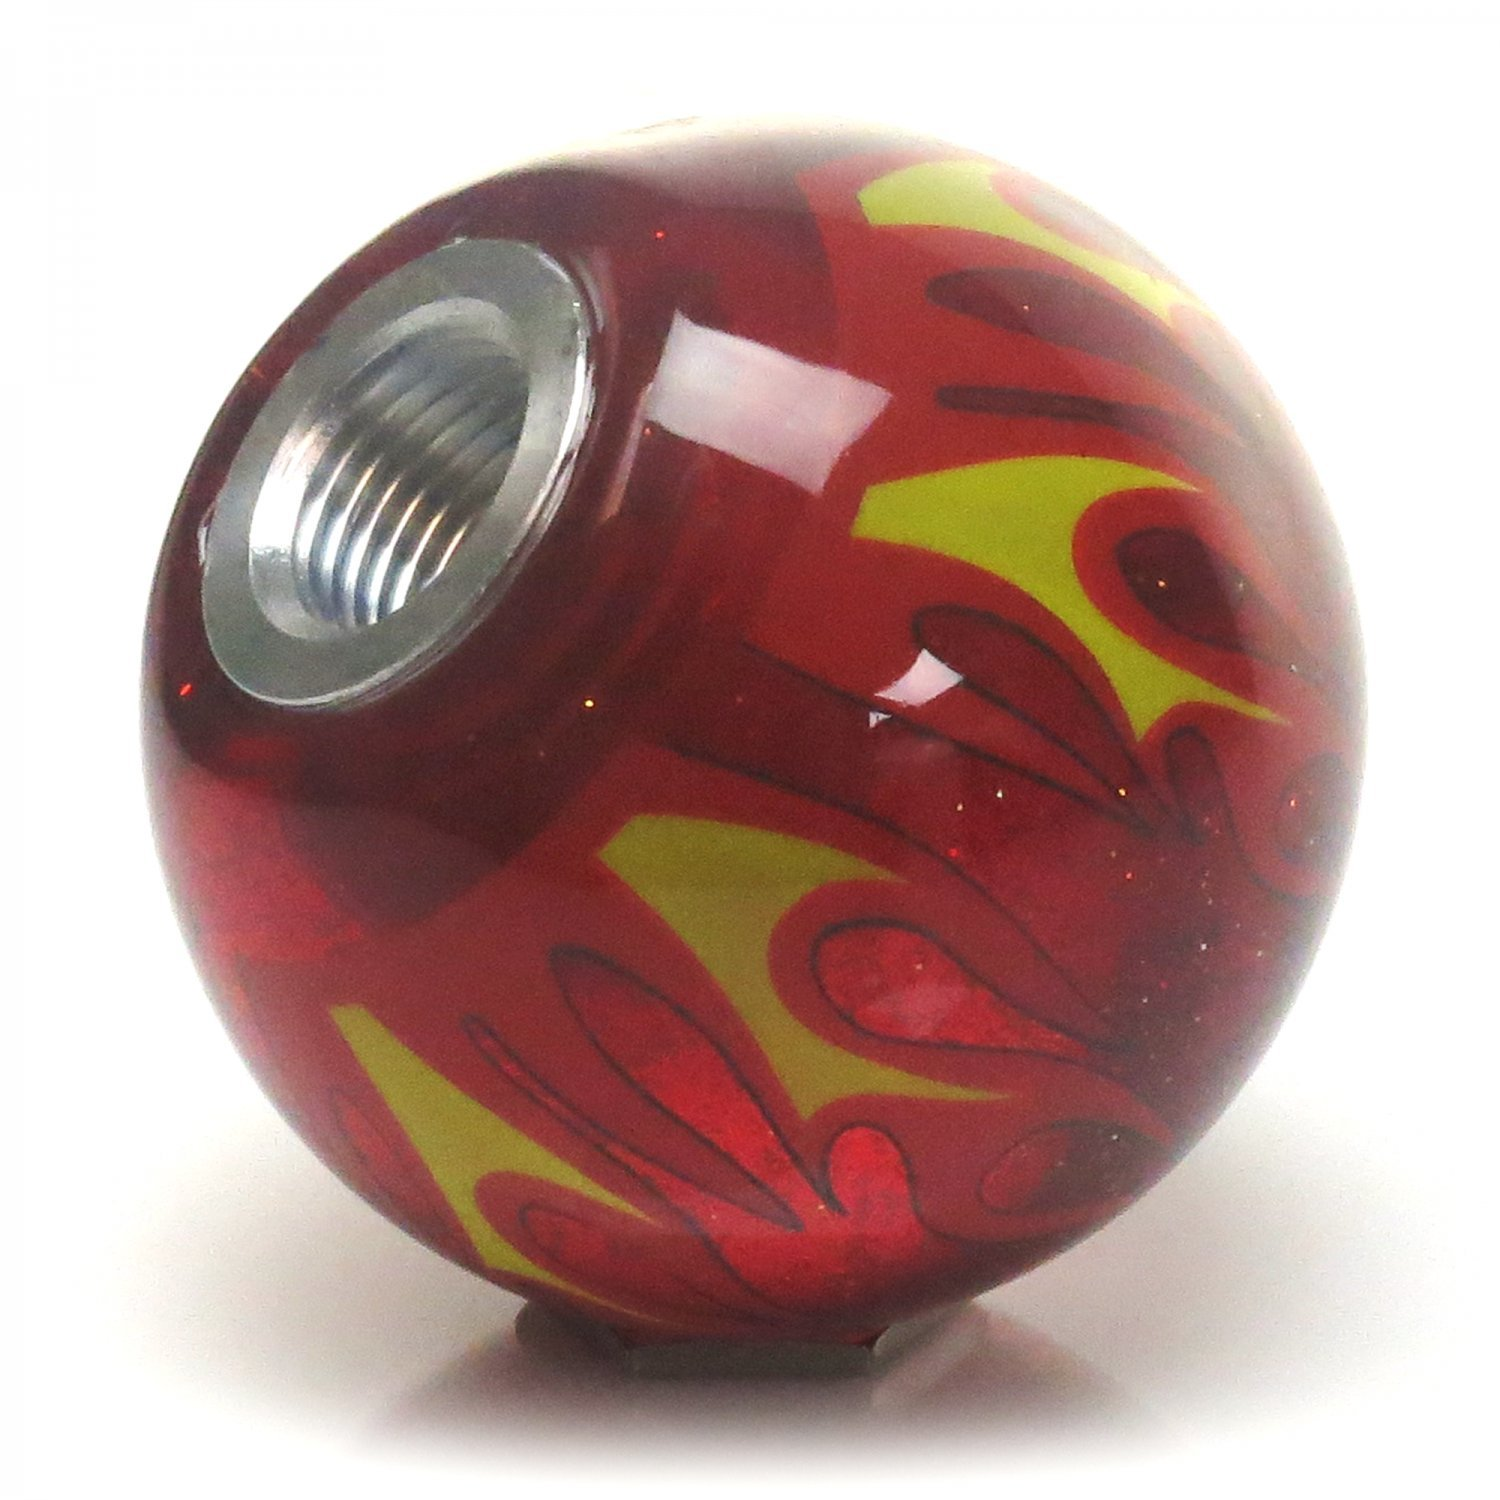 American Shifter 239812 Red Flame Metal Flake Shift Knob with M16 x 1.5 Insert Blue No U-Turn